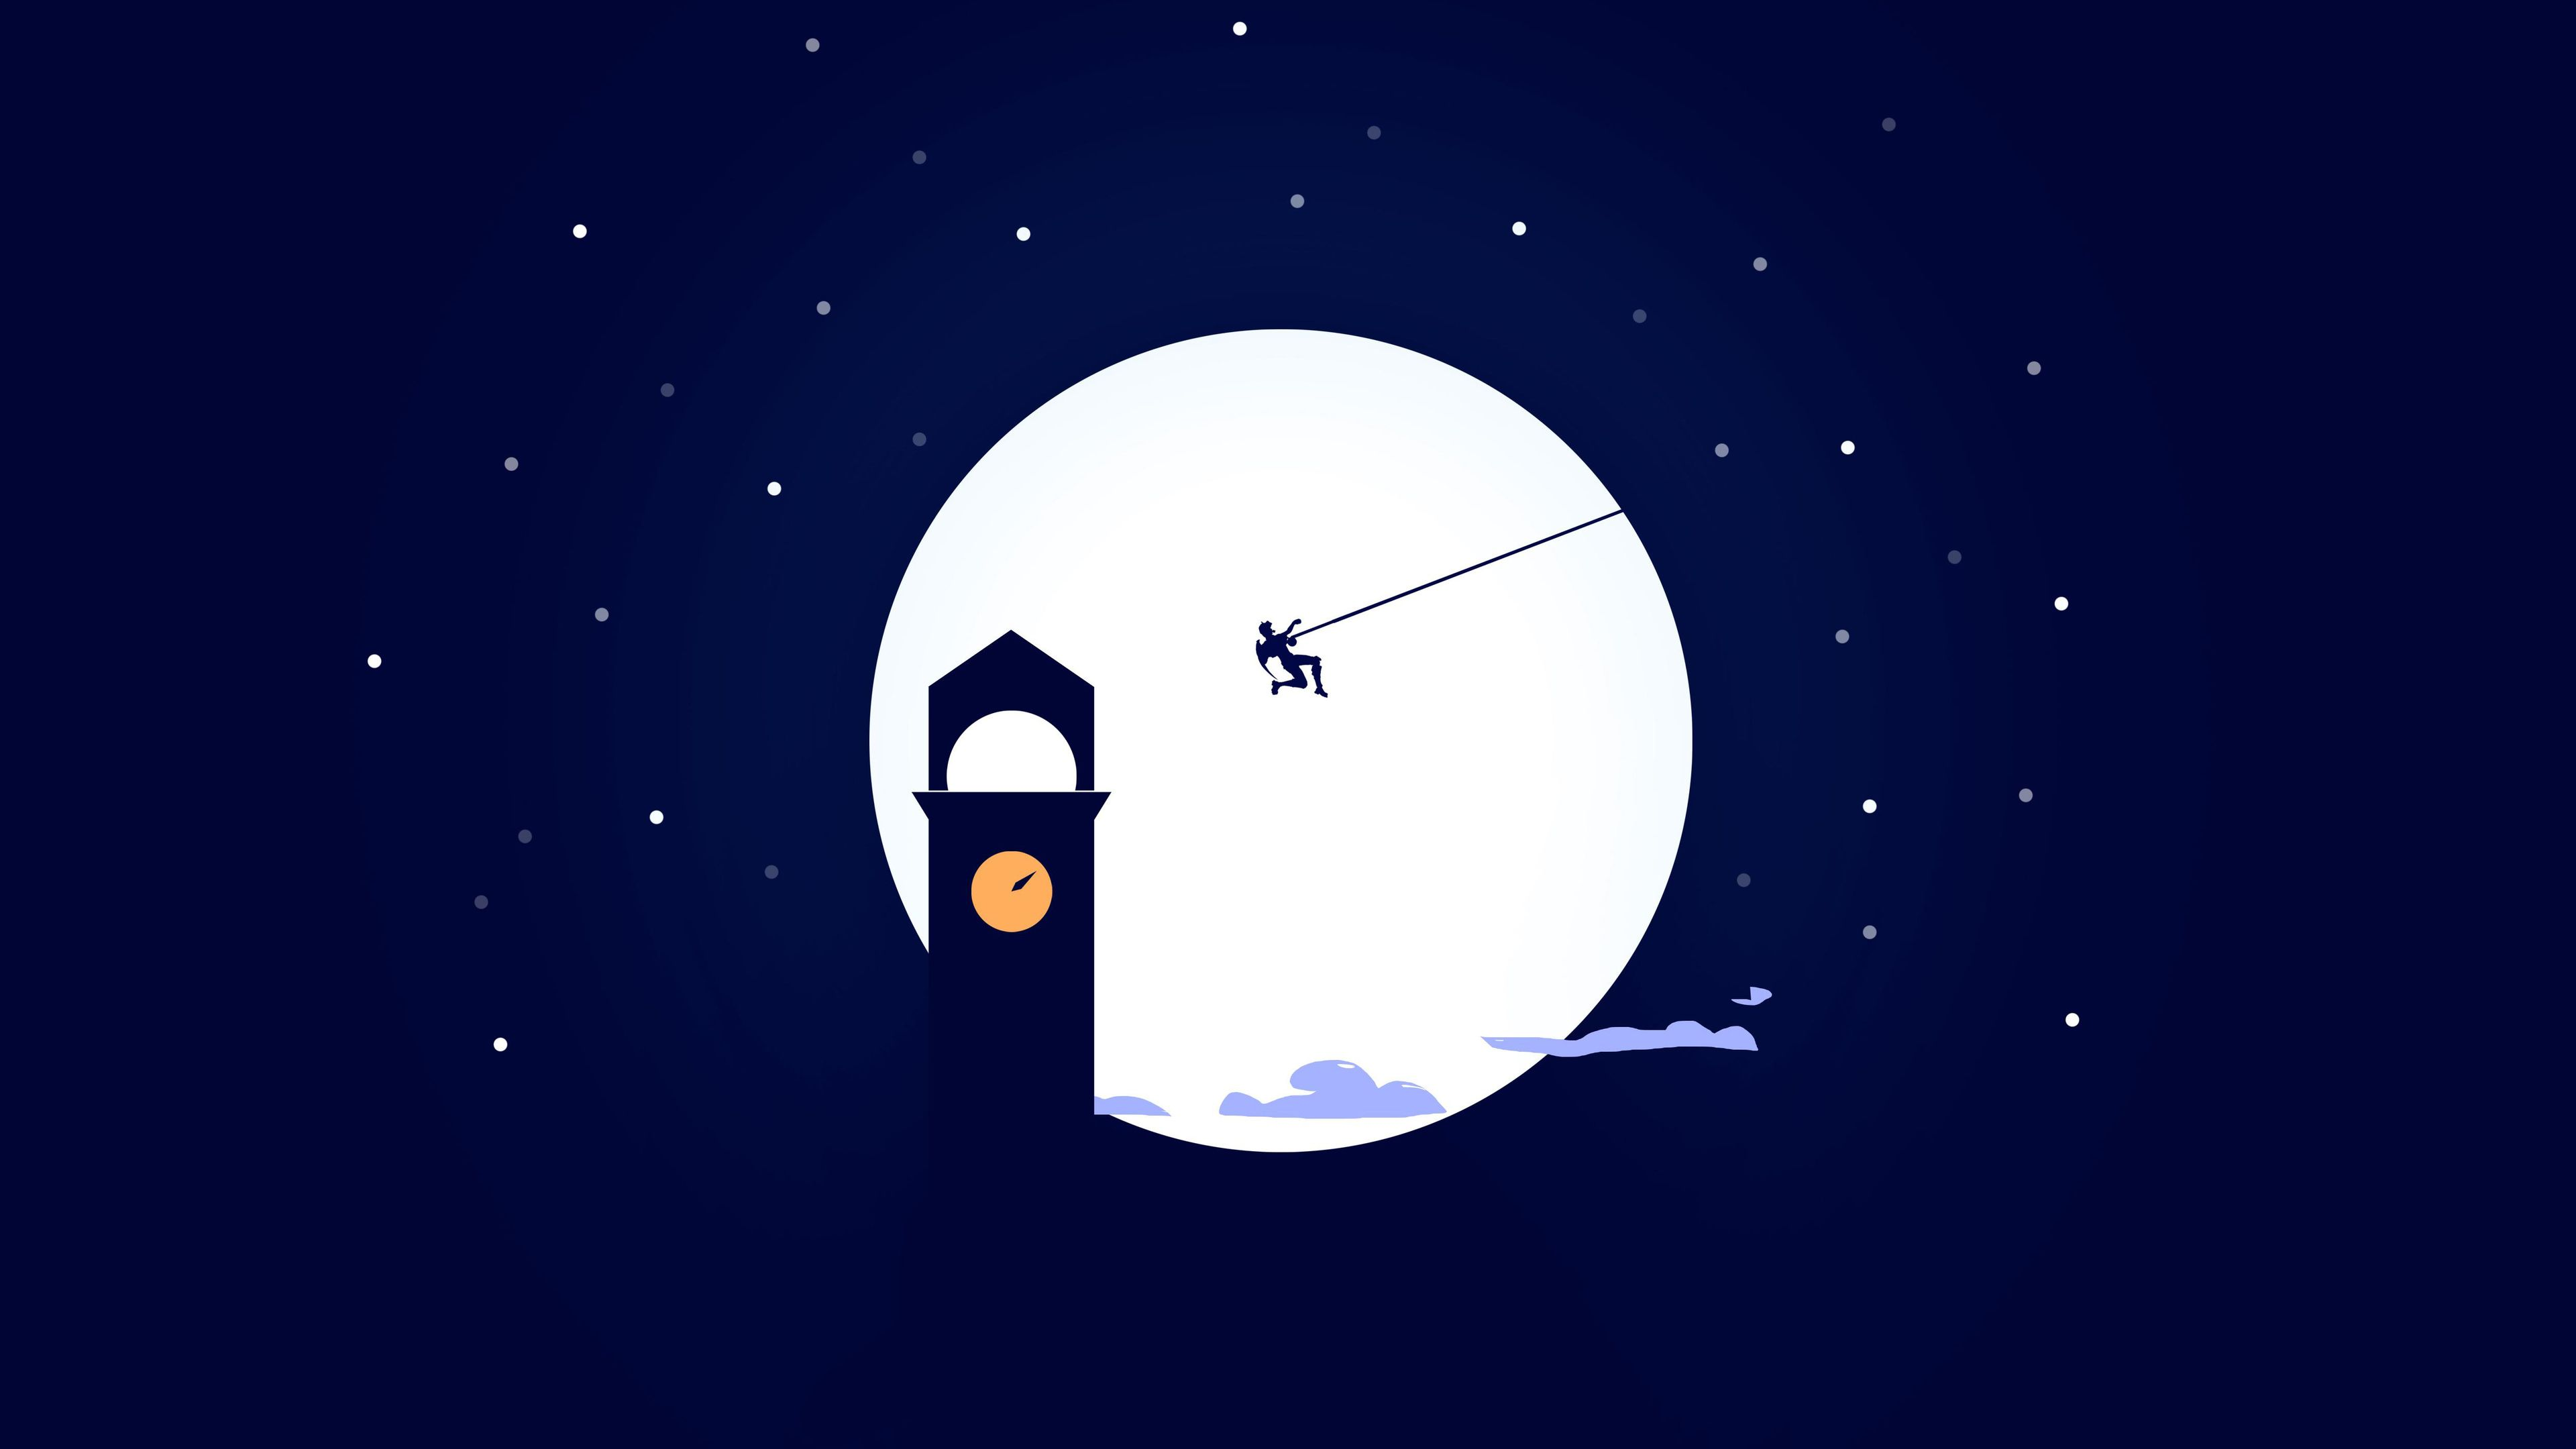 Fortnite Minimal Clock Tower 4k Minimalist Wallpapers Minimalism Wallpapers Hd Wallpapers Games Wallpaper Clock Wallpaper Minimalist Wallpaper Art Wallpaper